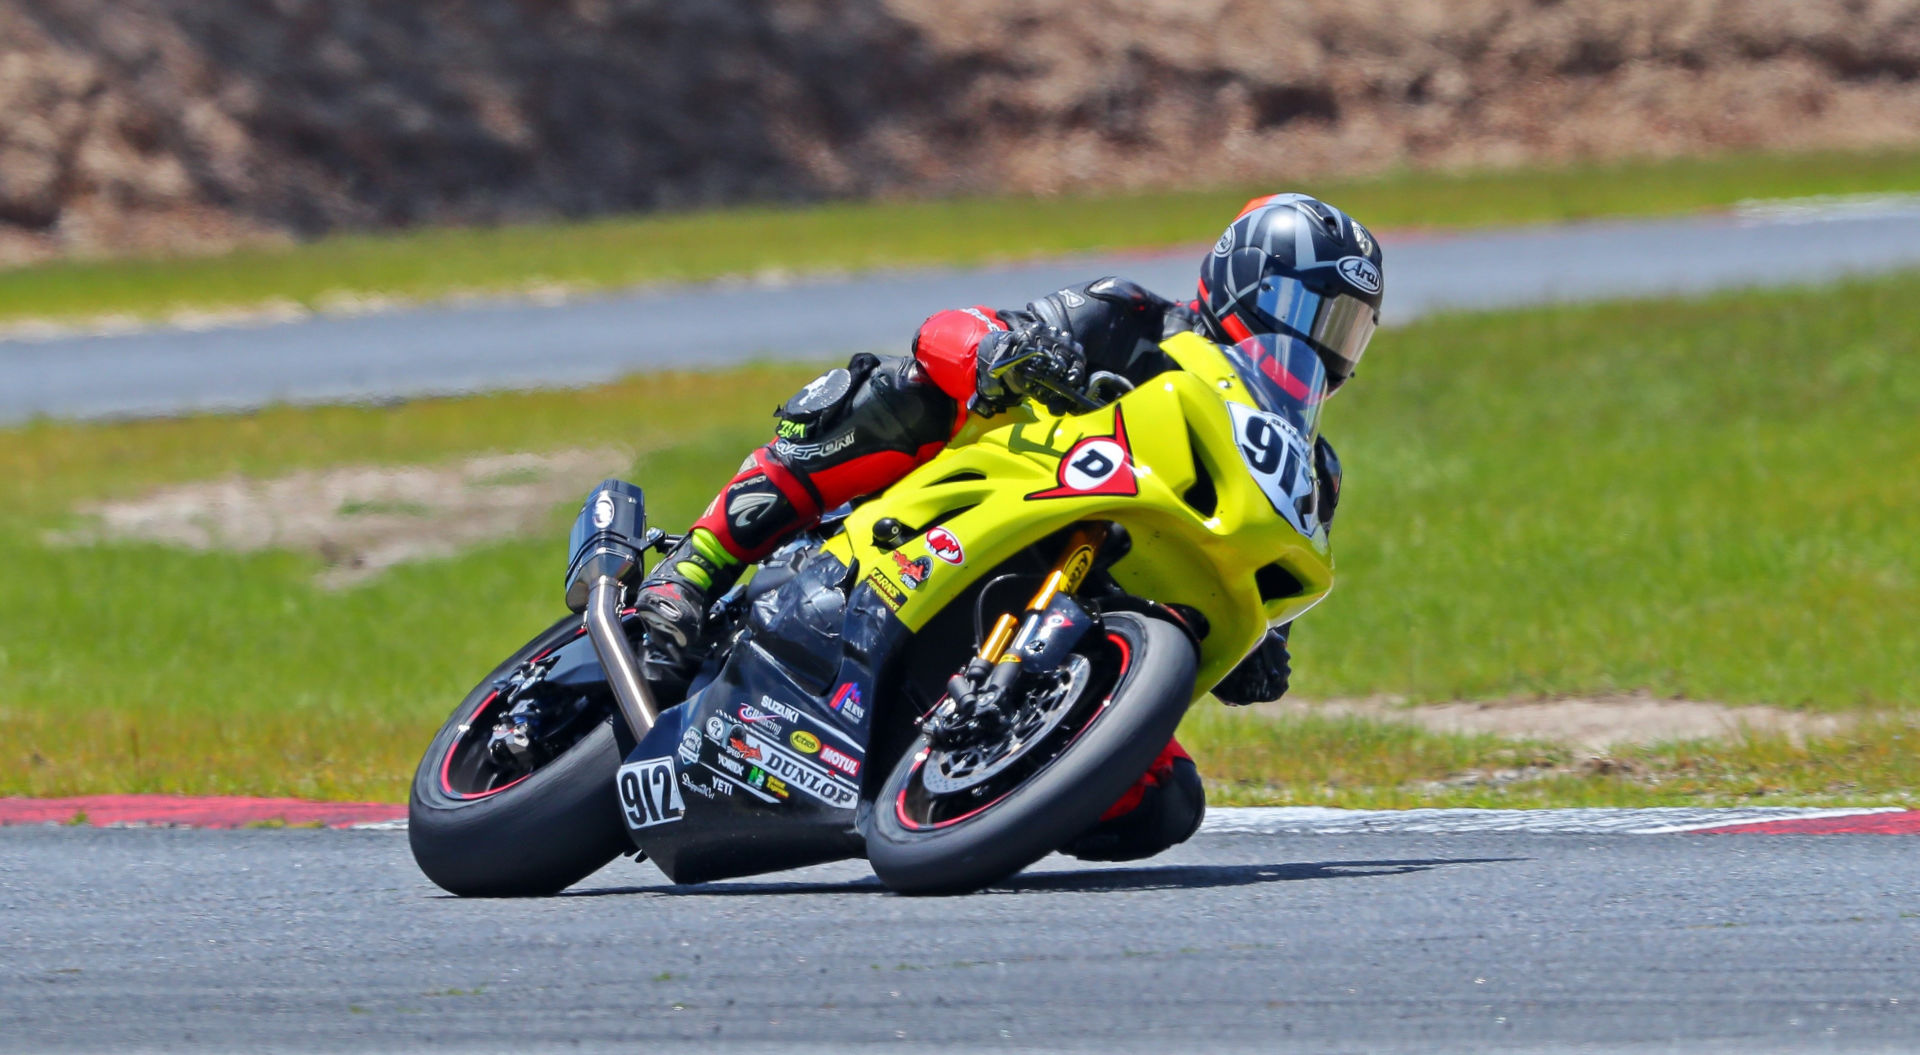 Twisted Speed Racing's Dustin Dominguez (912) took the lead at the start of the WERA/N2 Racing National Endurance Series race at Roebling Road Raceway, a lead that the team never relinquished. Photo by Lee Fields/Active Shooter Photography, courtesy Twisted Speed Racing.